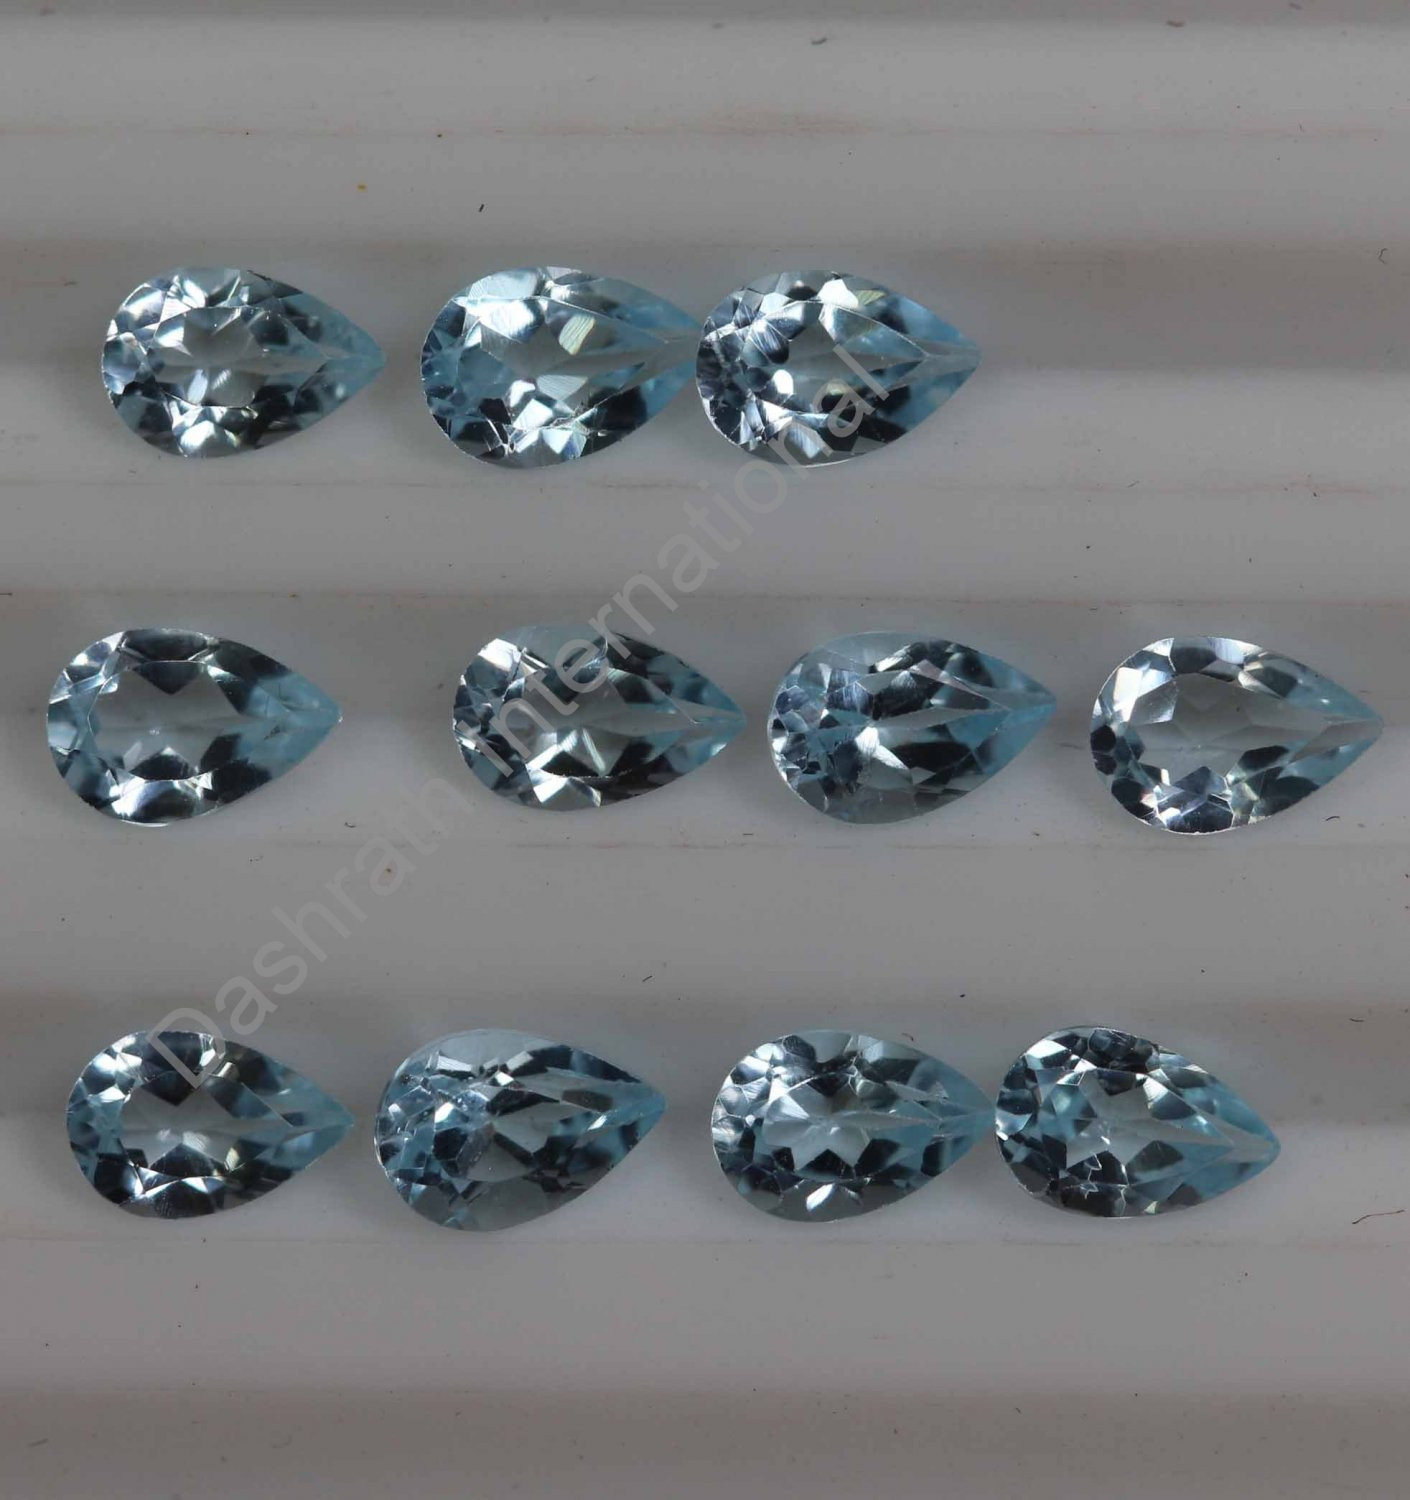 7x5mm  Natural Sky Blue Topaz Faceted Cut Pear 5 Pieces Lot  Top Quality Loose Gemstone